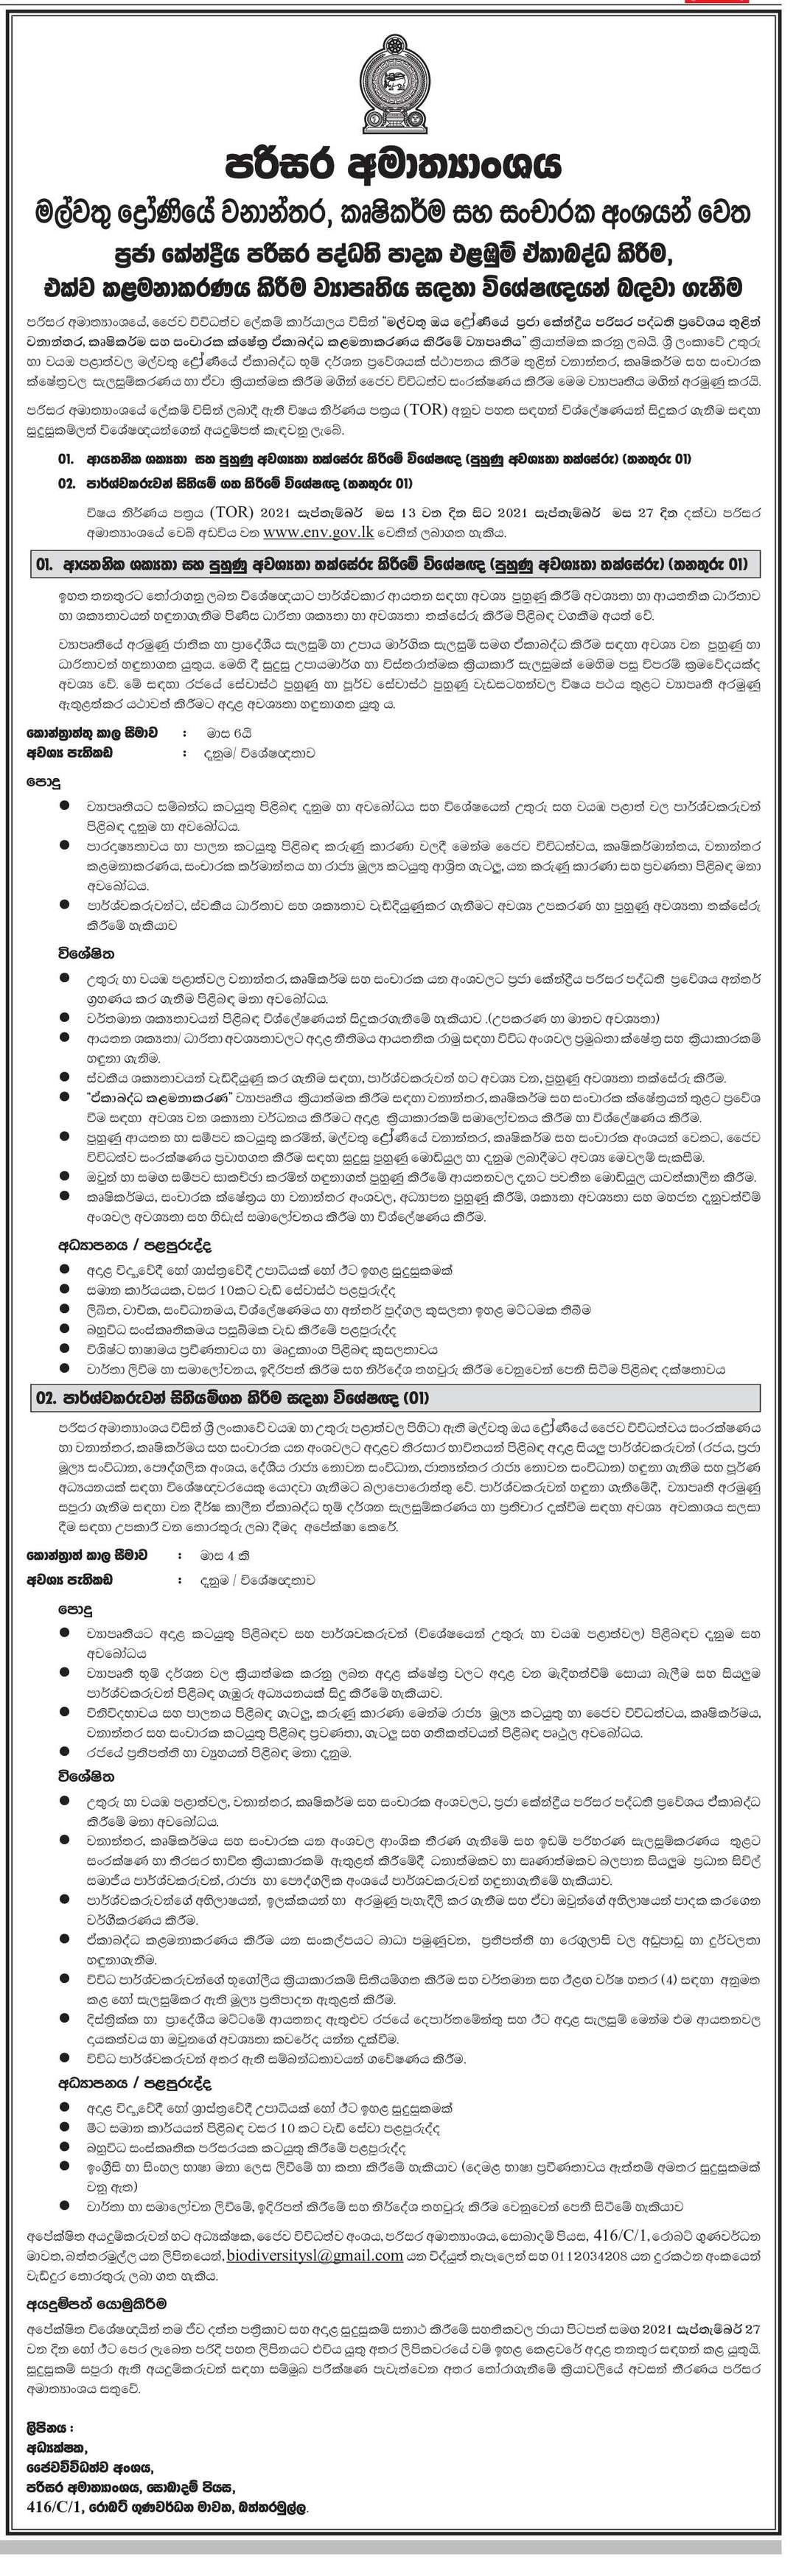 Corporate Feasibility and Training Requirement Assessment Specialist, Stakeholder Mapping Specialist